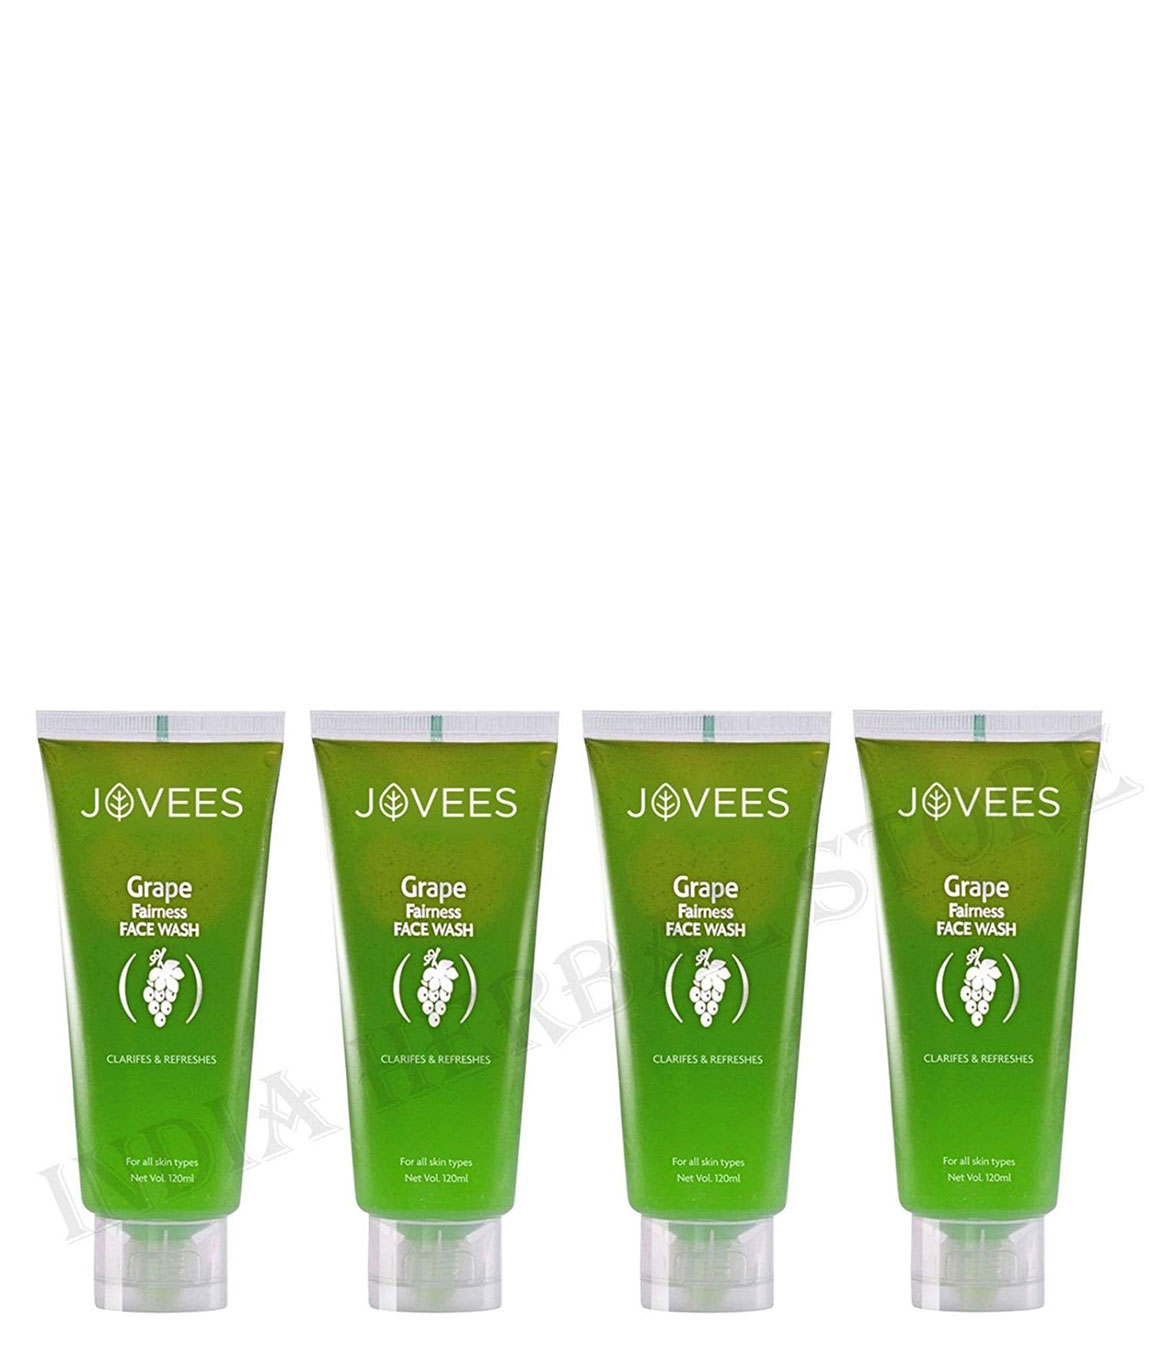 Jovees Herbal Grape Fairness Face Wash It Makes Skin Glow And Visibly Fairer  480 ml